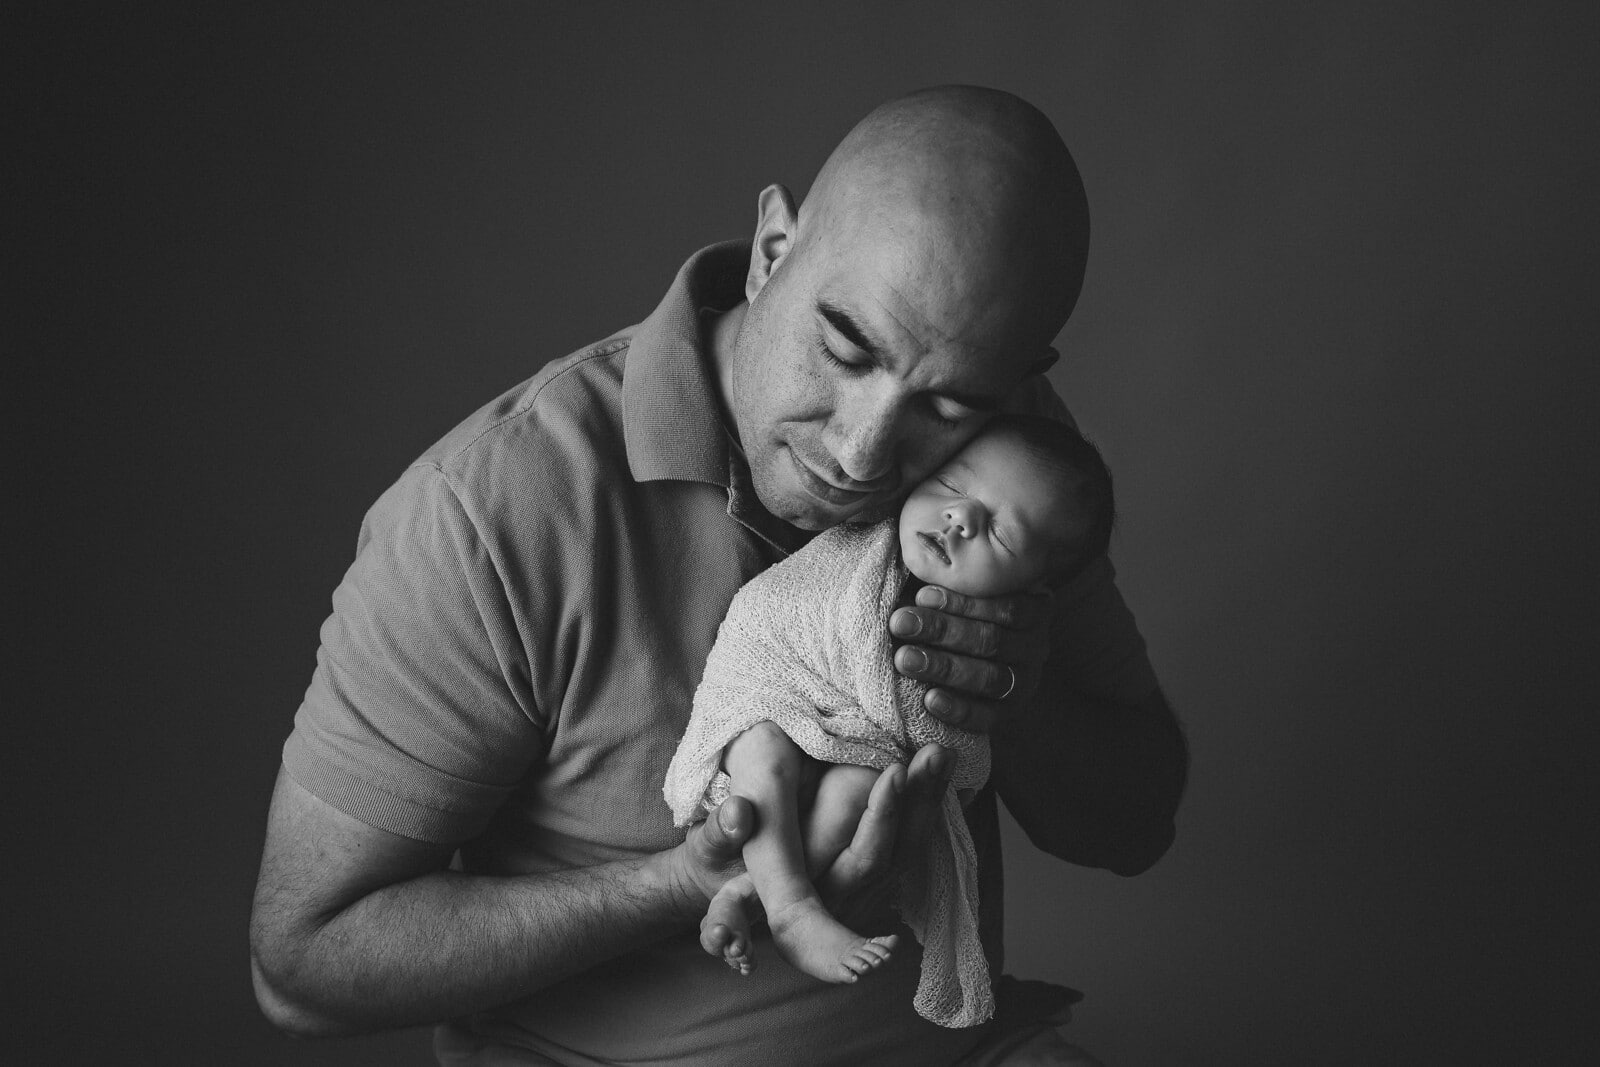 Loving father and a blessed child